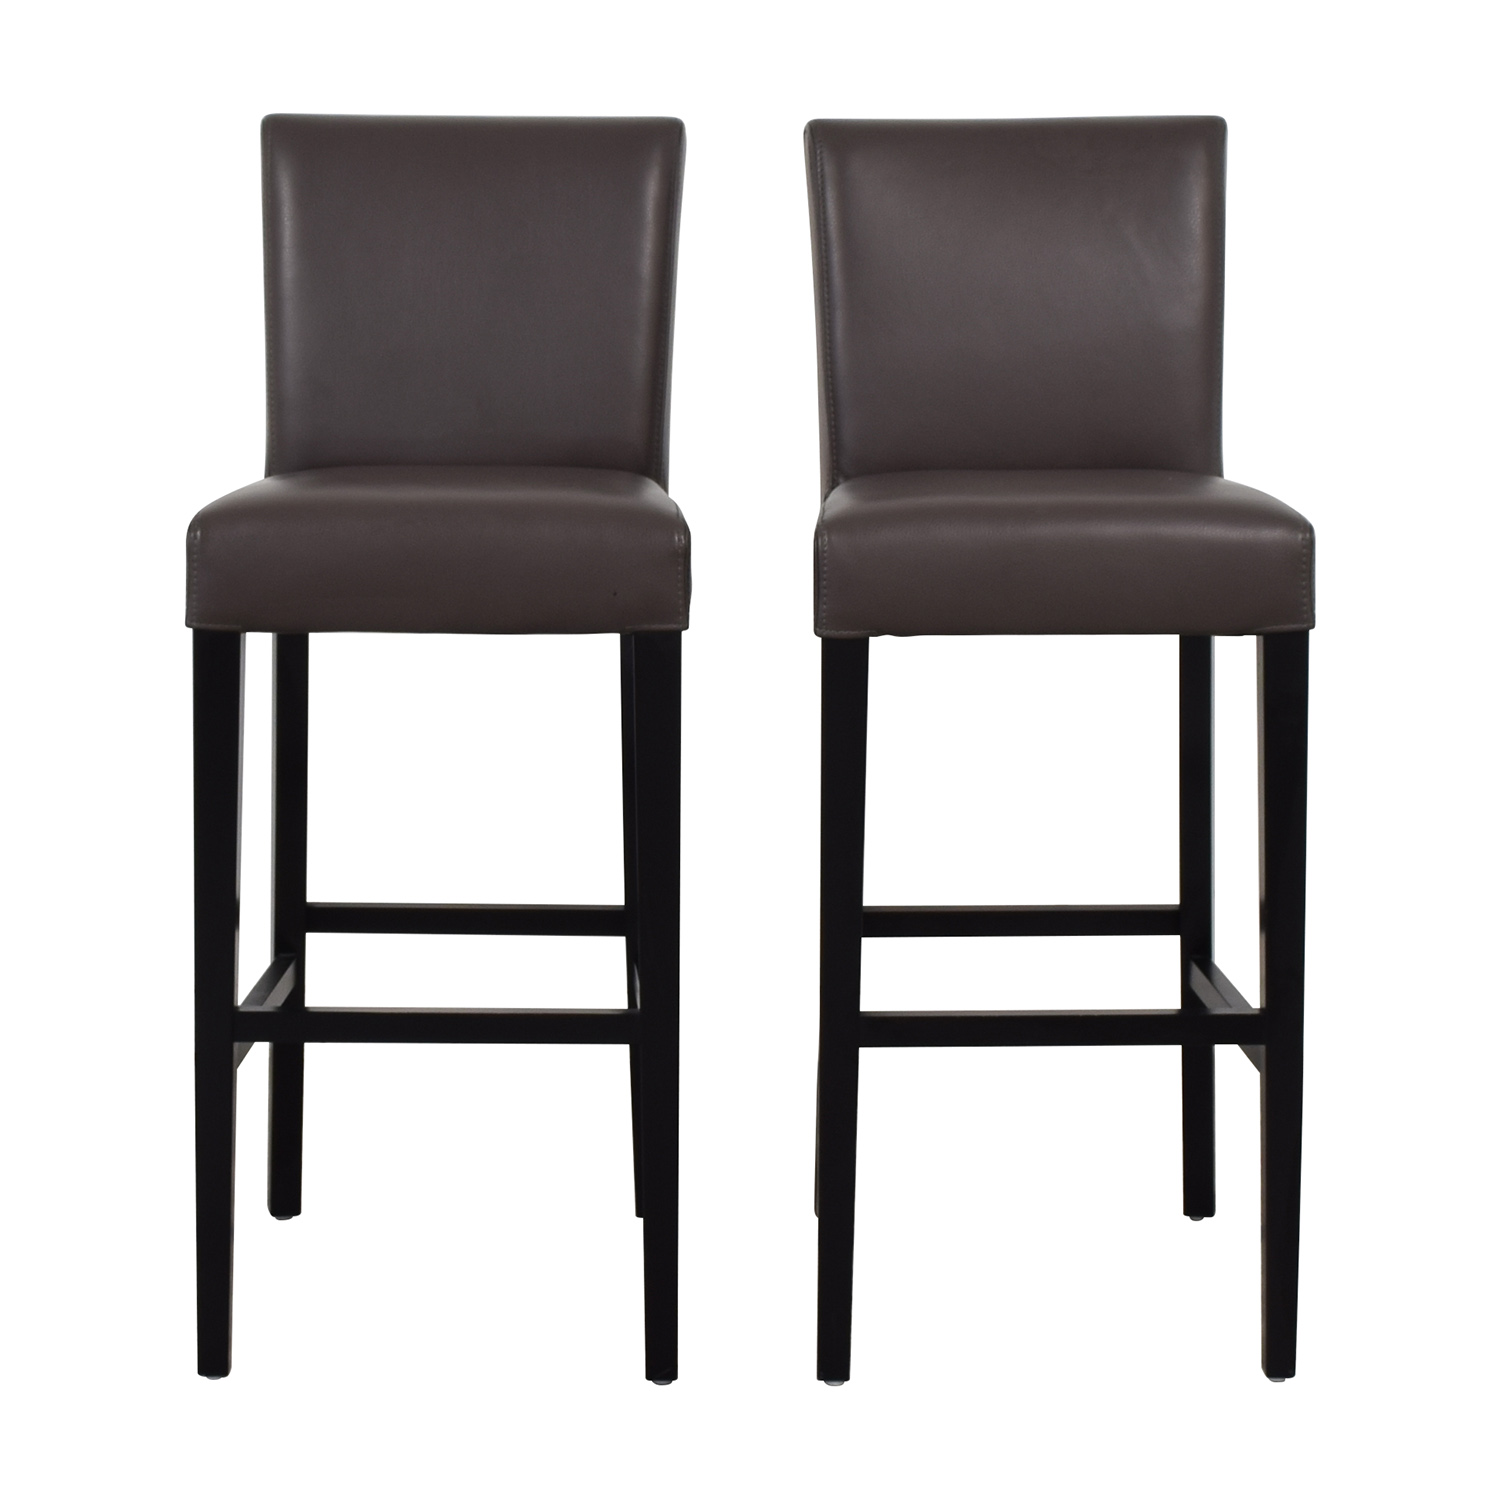 buy Crate & Barrel Lowe Leather Bar Stools Crate & Barrel Chairs